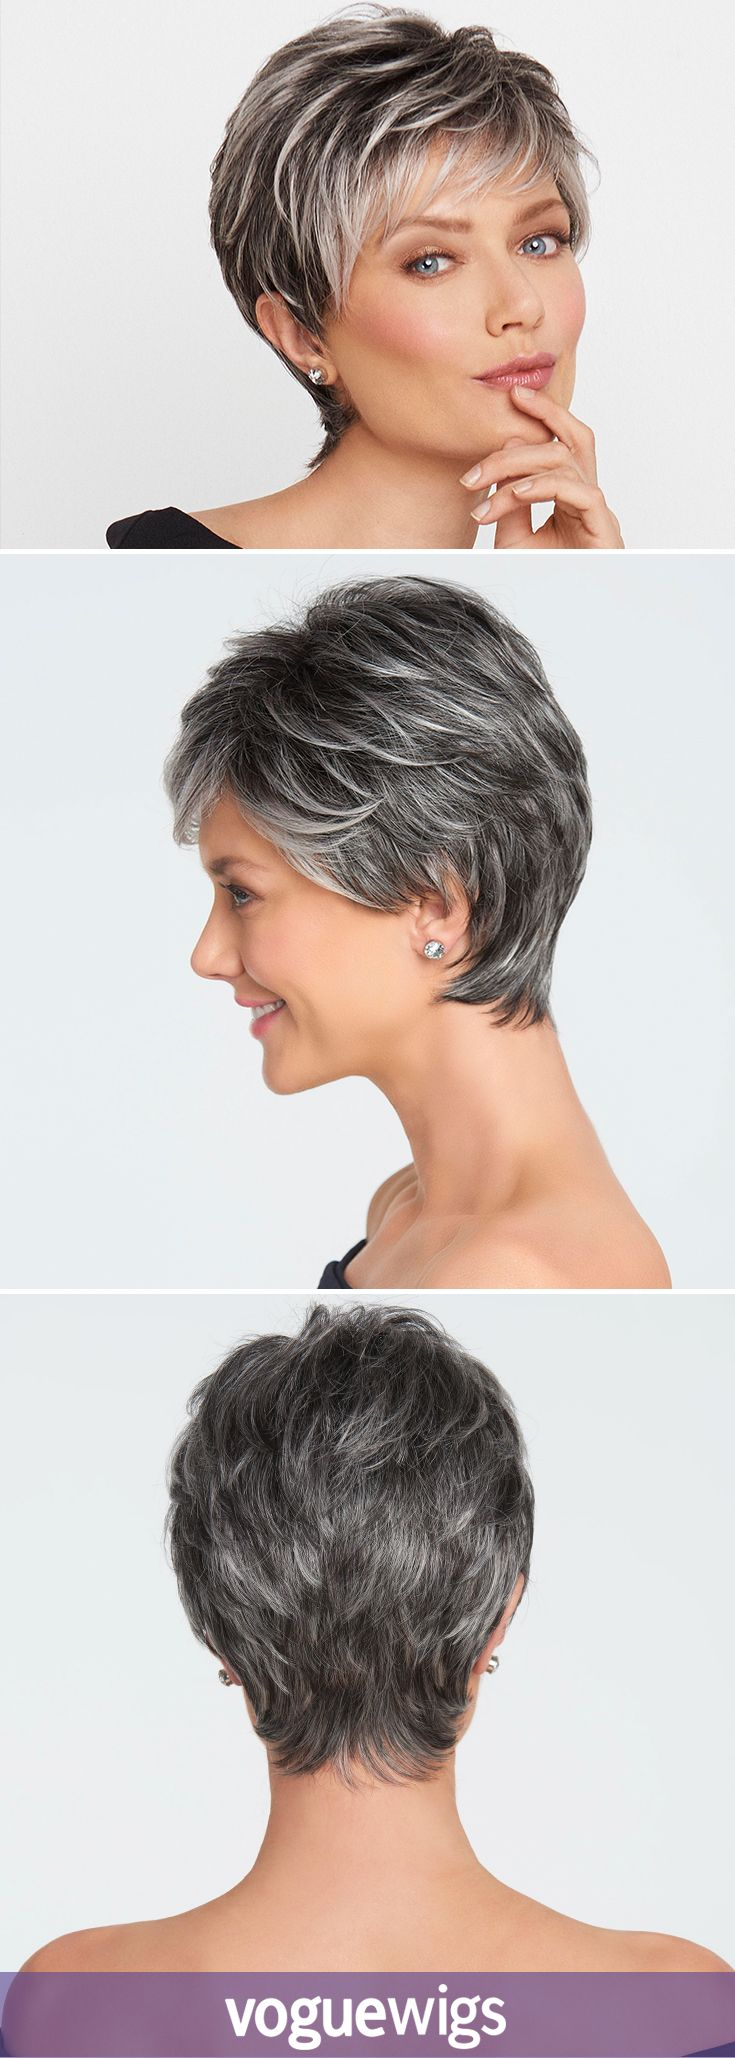 Boy hairstyle highlight this short boy cut is long on style and fullness the crushing on